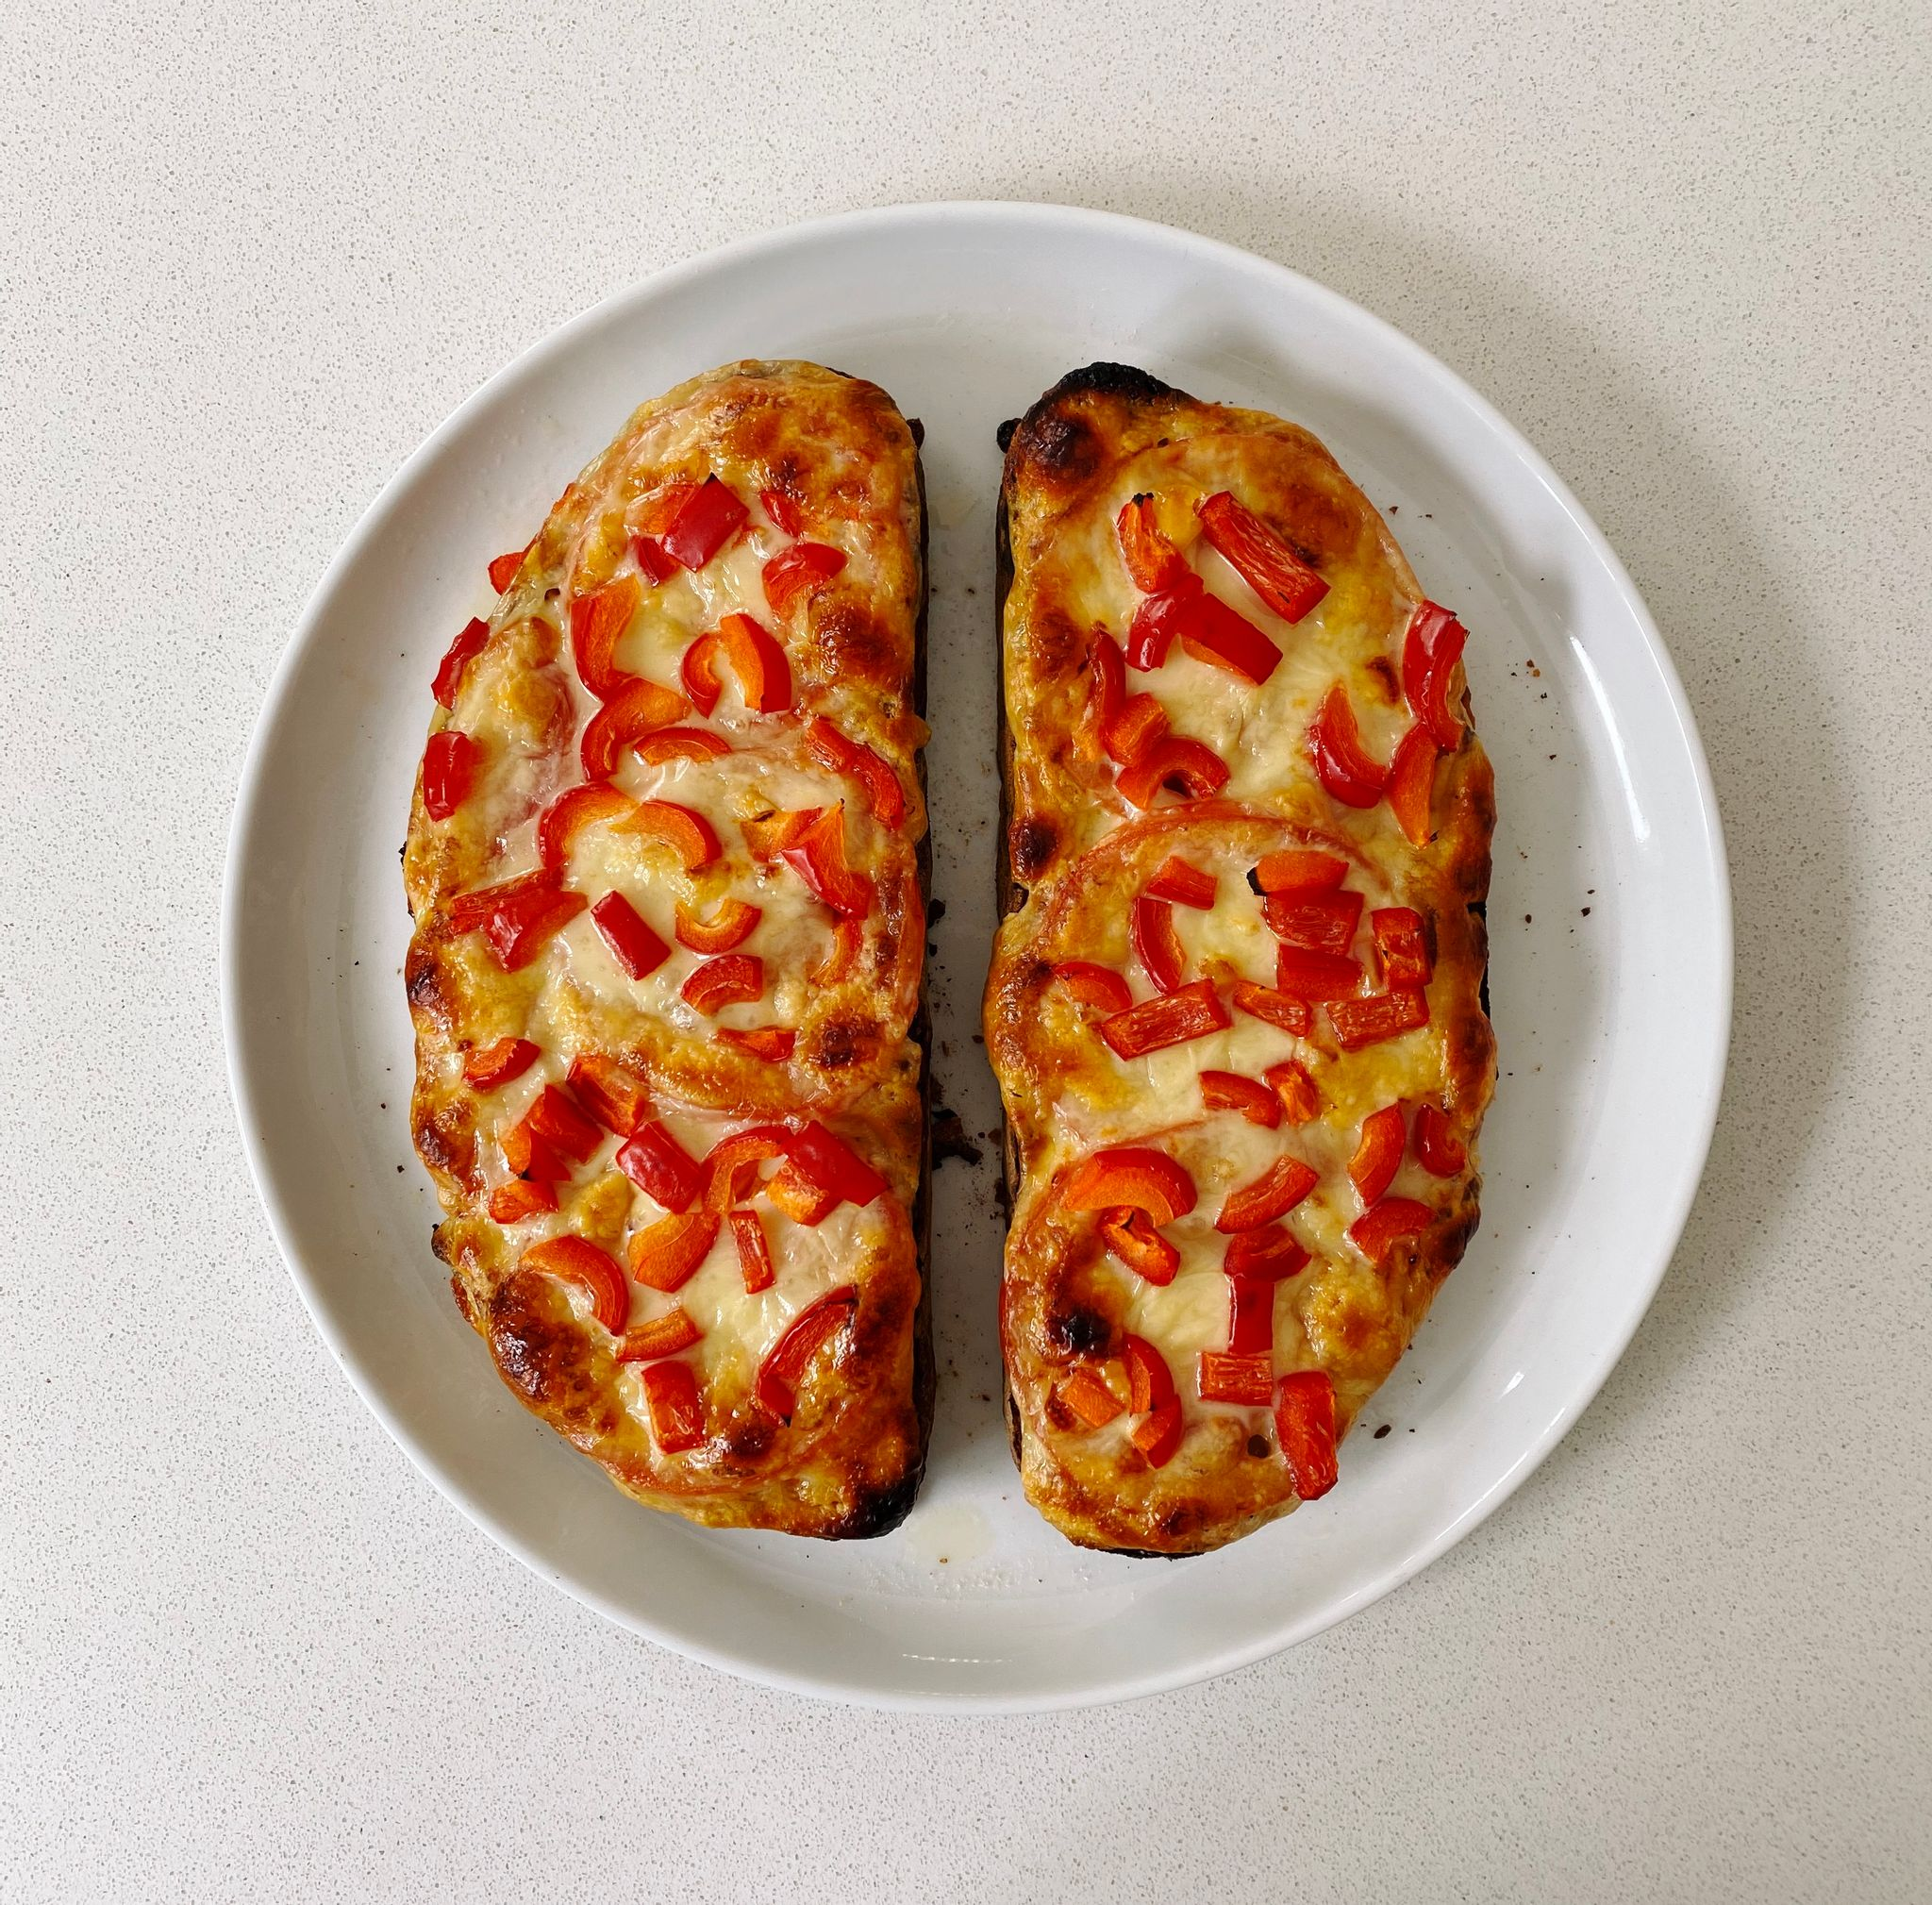 A photo of two cheese and tomato toasties sitting on a plate, with diced capsicum on top.